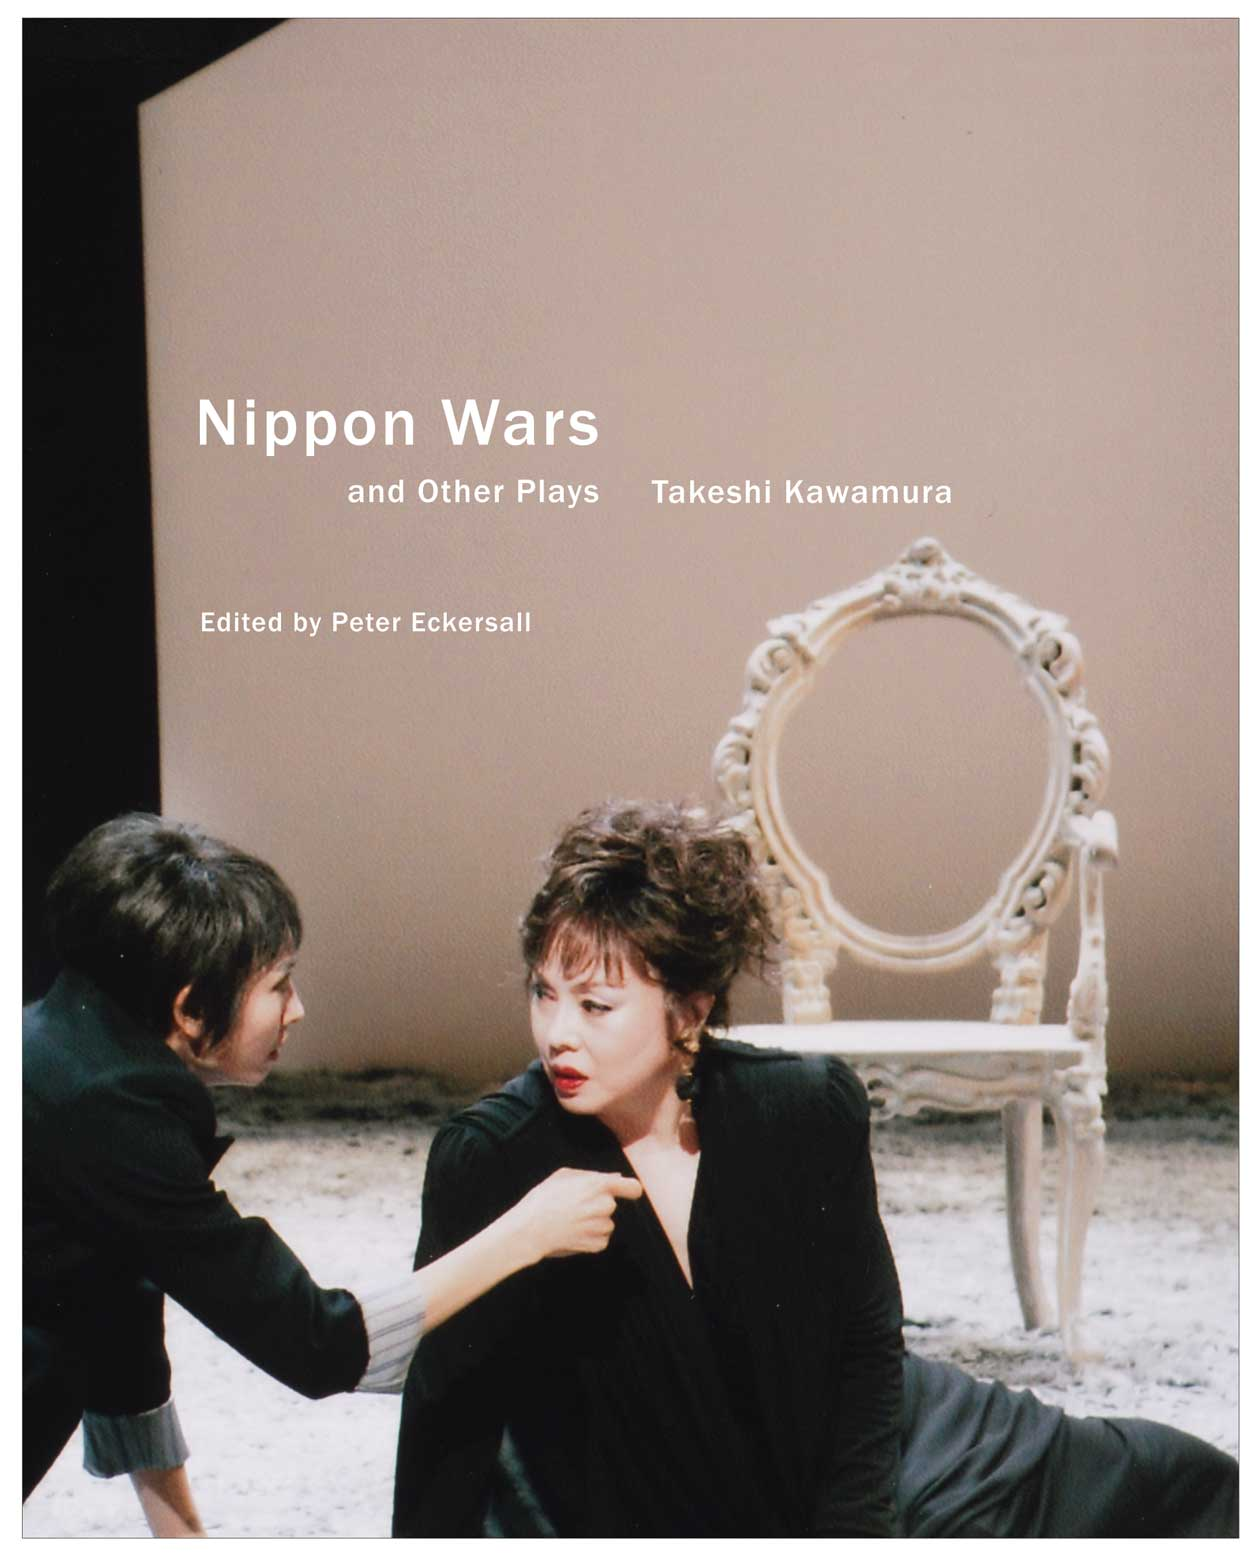 Nippon Wars: and Other Plays by Takeshi Kawamura |  Seagull Books